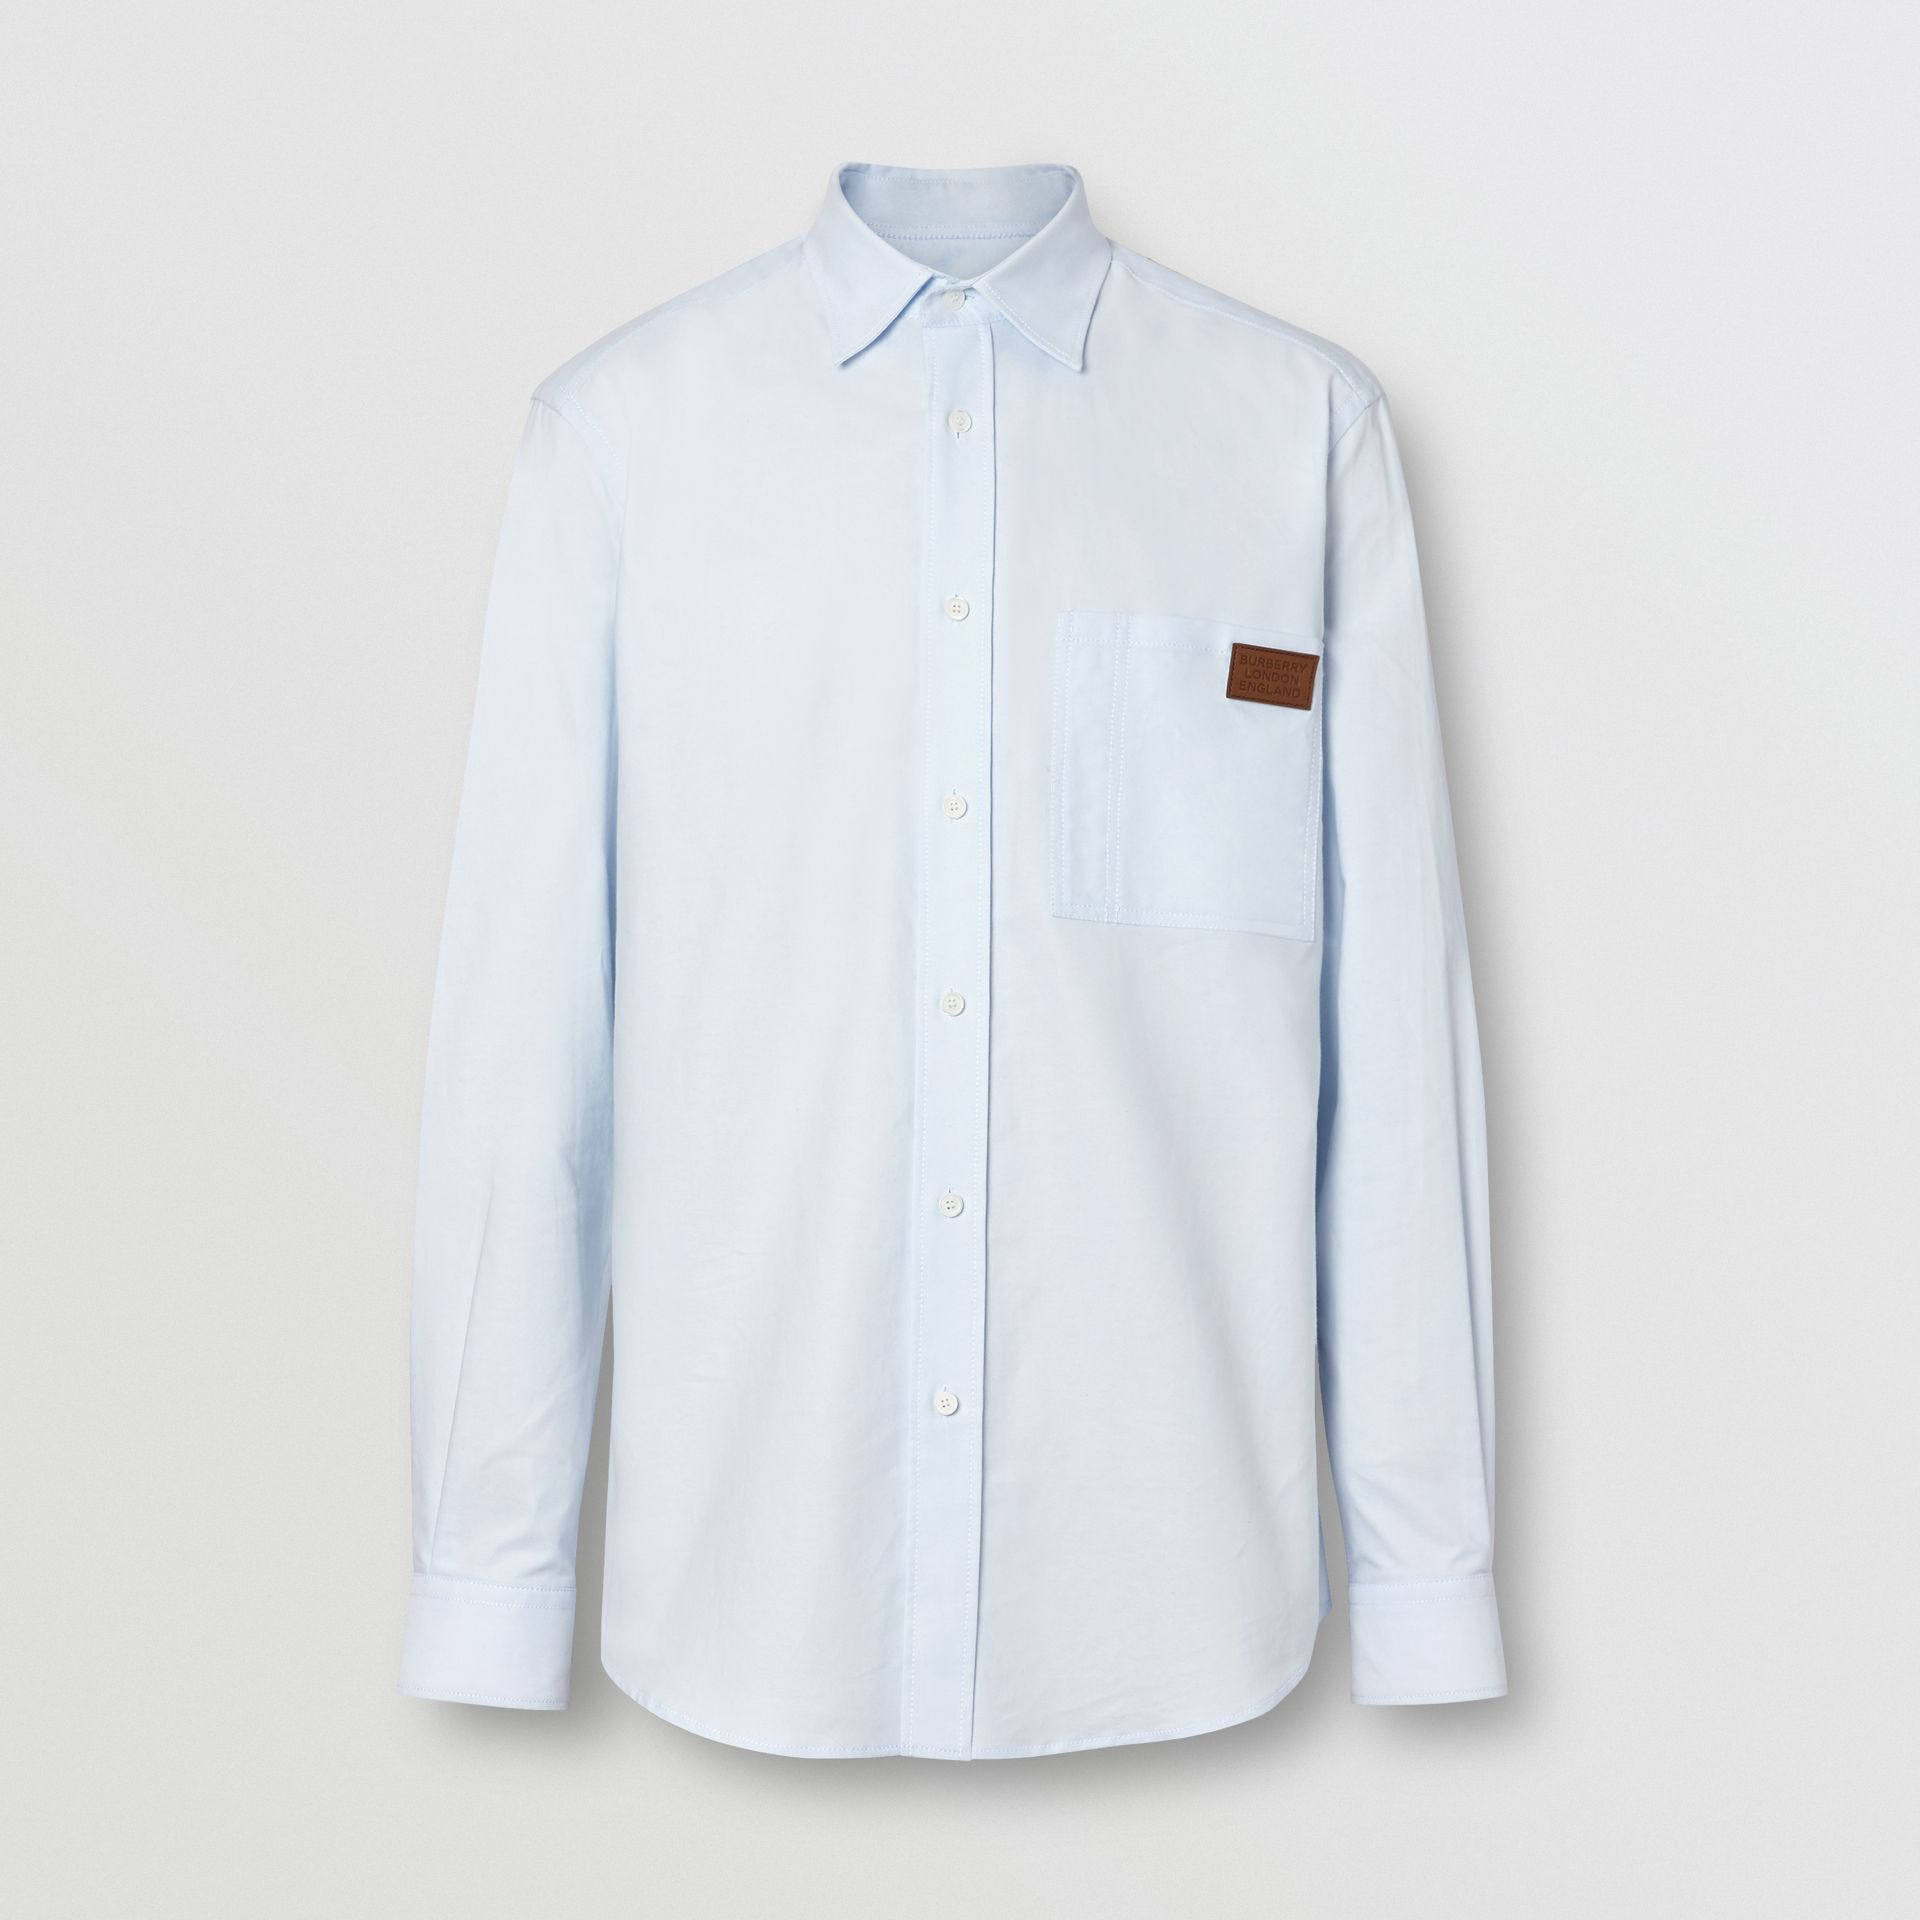 Logo Detail Cotton Oxford Shirt in Sky Blue - Men | Burberry - gallery image 3